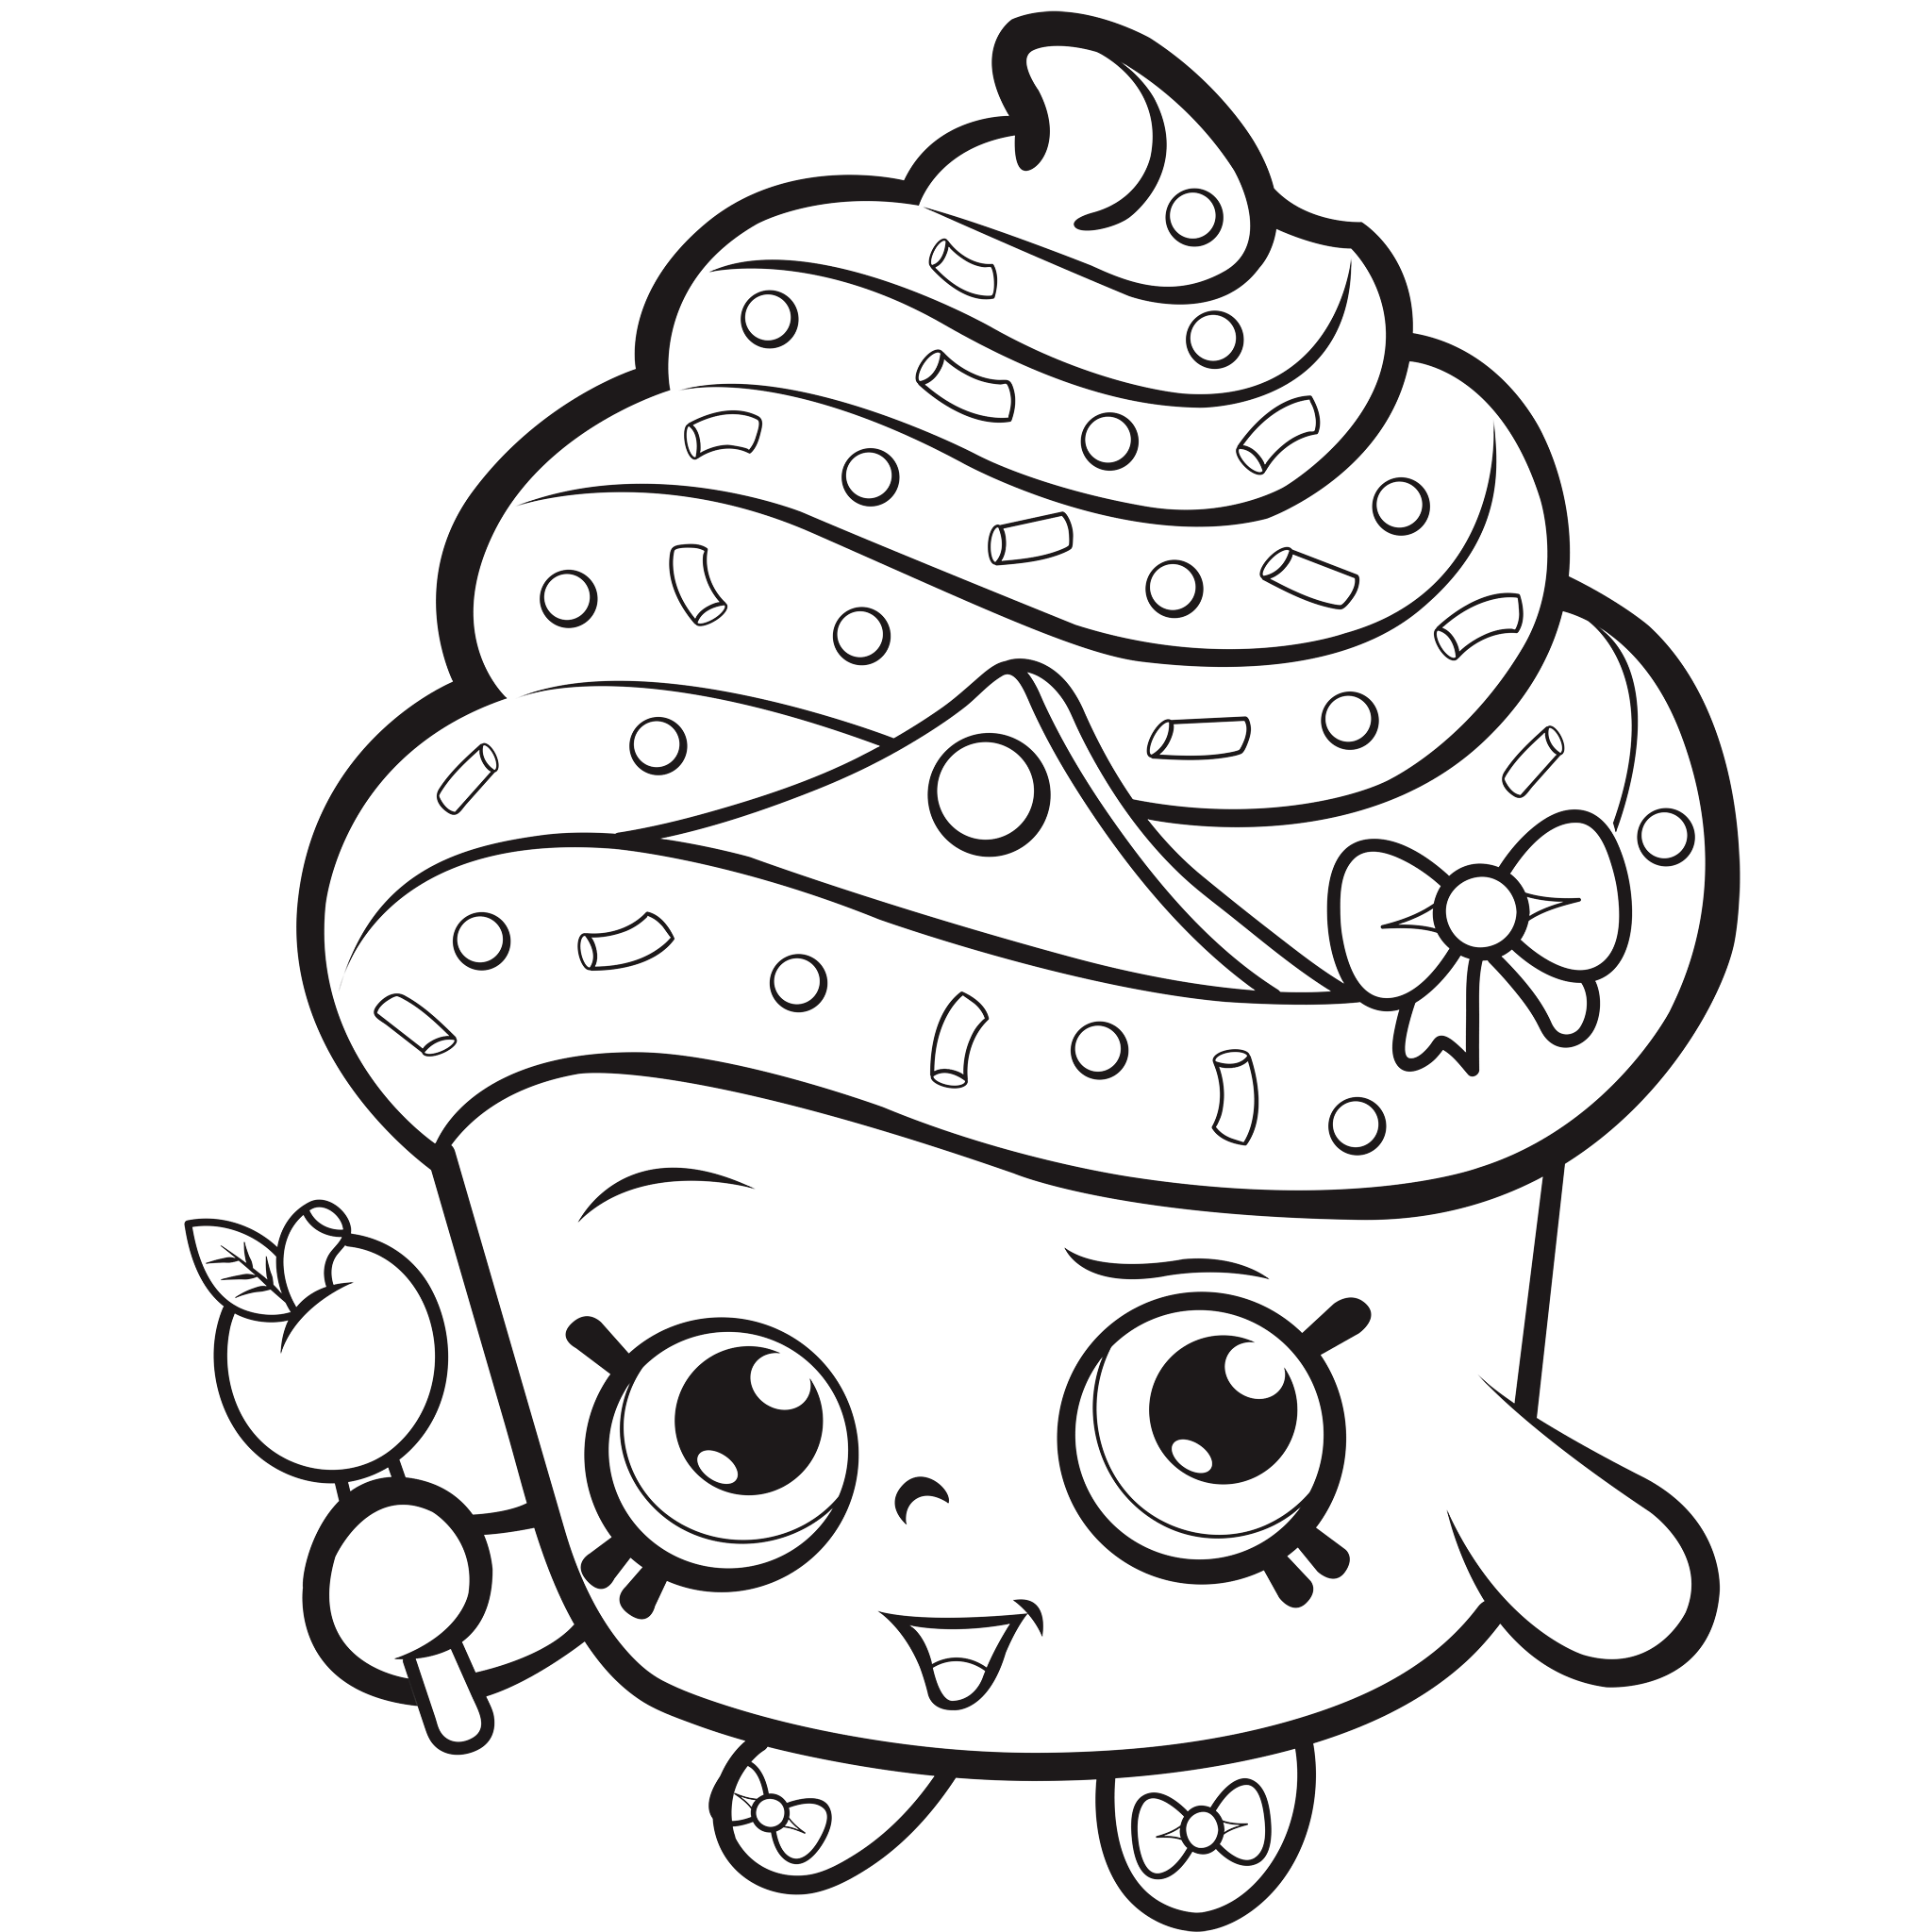 Shopkins Coloring Pages Shopkin coloring pages Cupcake coloring pages Princess coloring pages